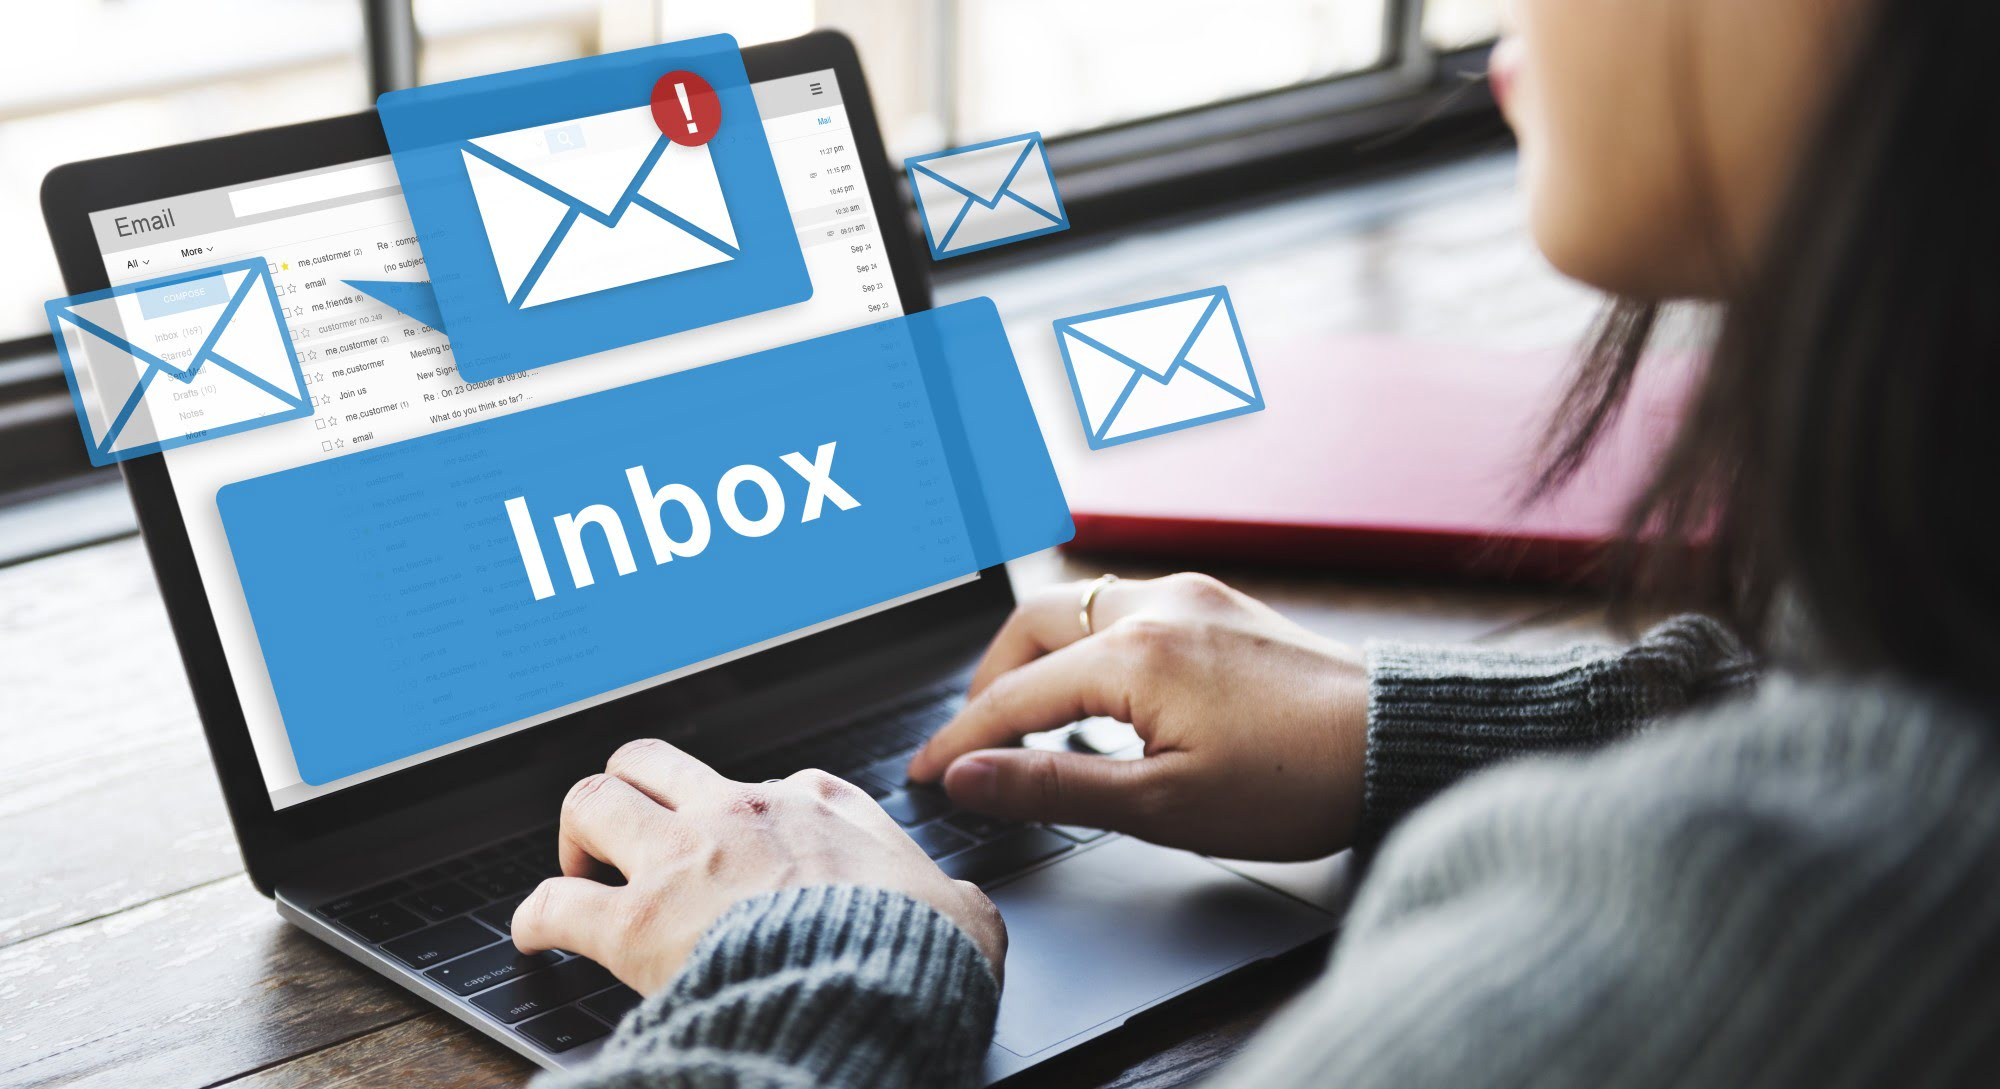 7 Essential Features To Look For in Email Hosting Services